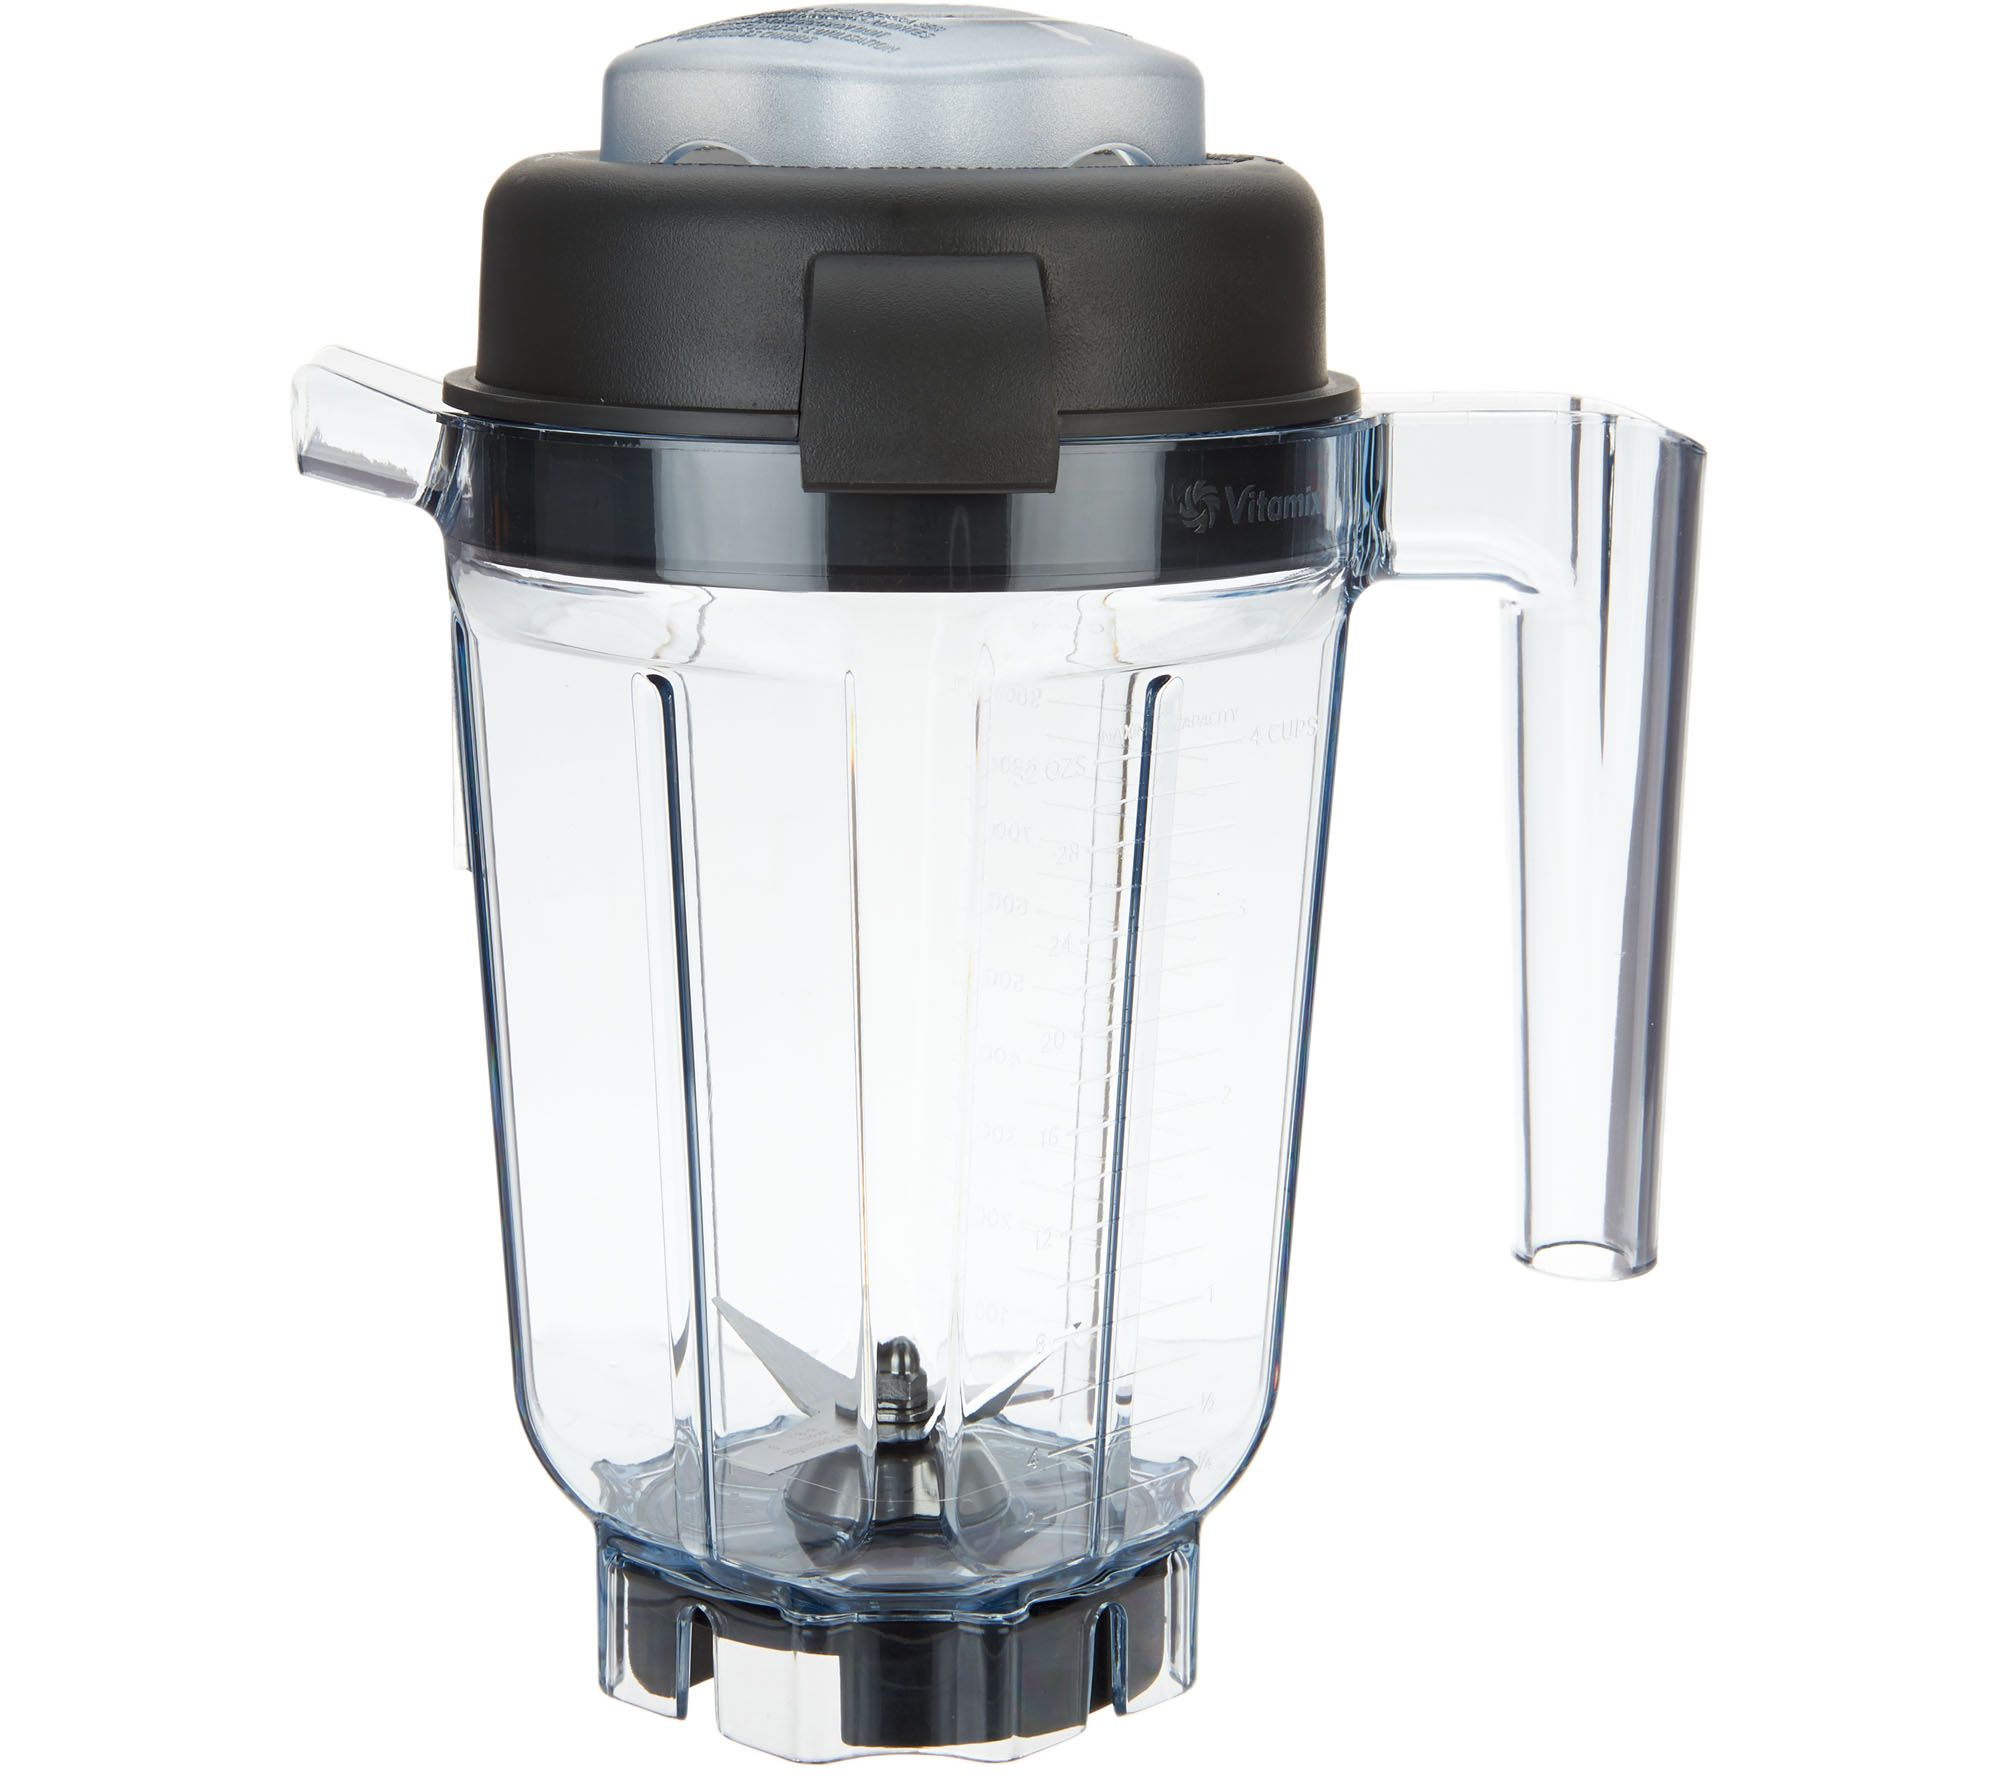 vitamix turbo blend 16in1 64oz 2speed blender w 32oz dry container page 1 u2014 qvccom